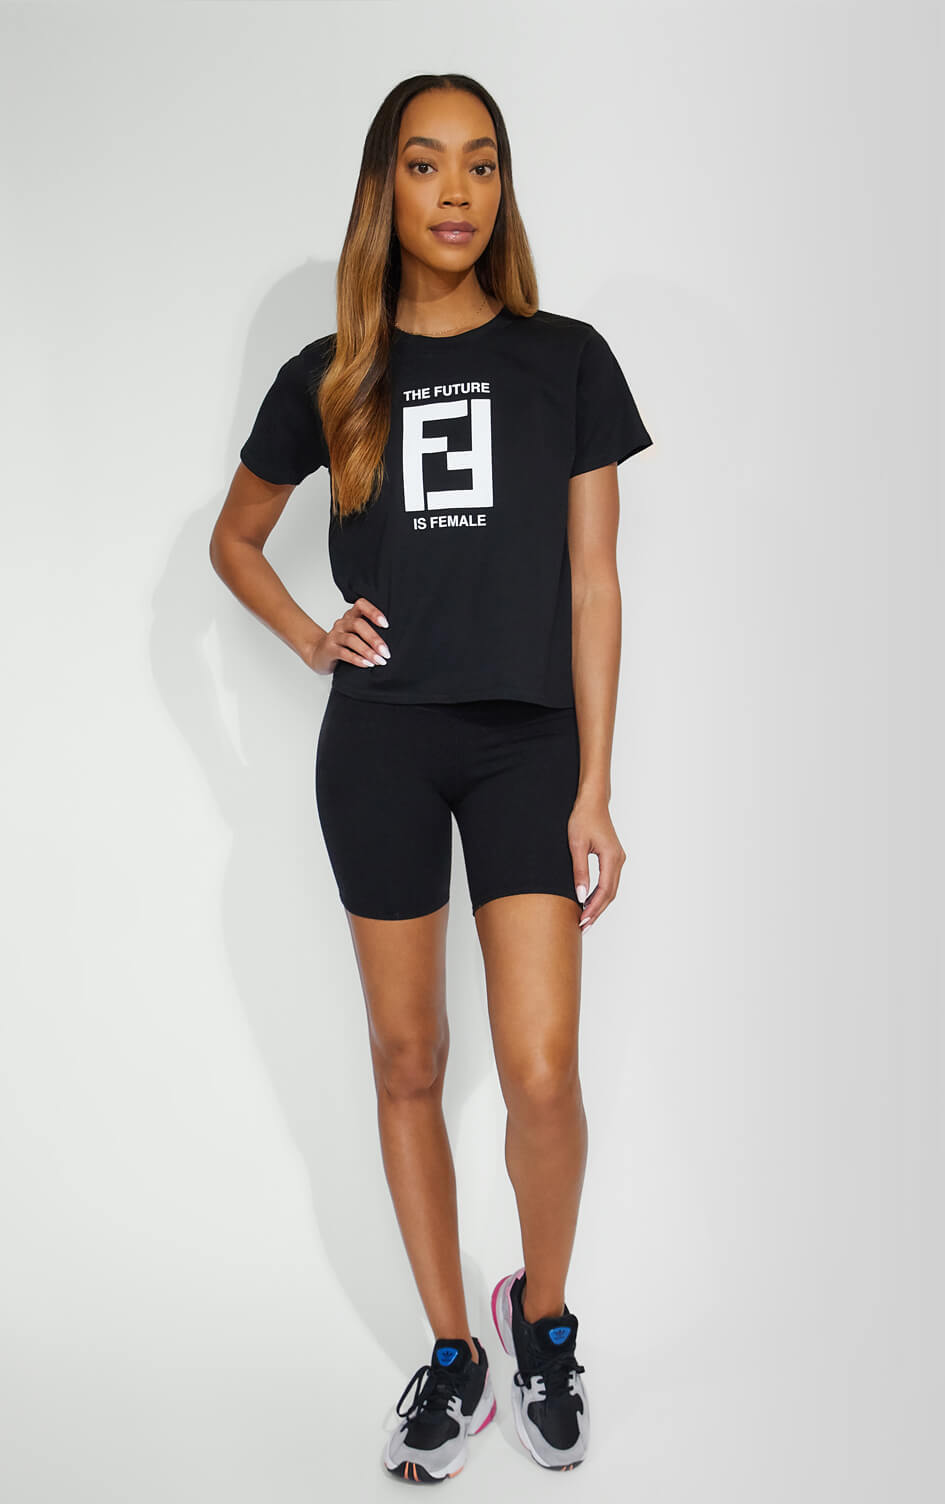 fendi-future-is-female-graphic-tee